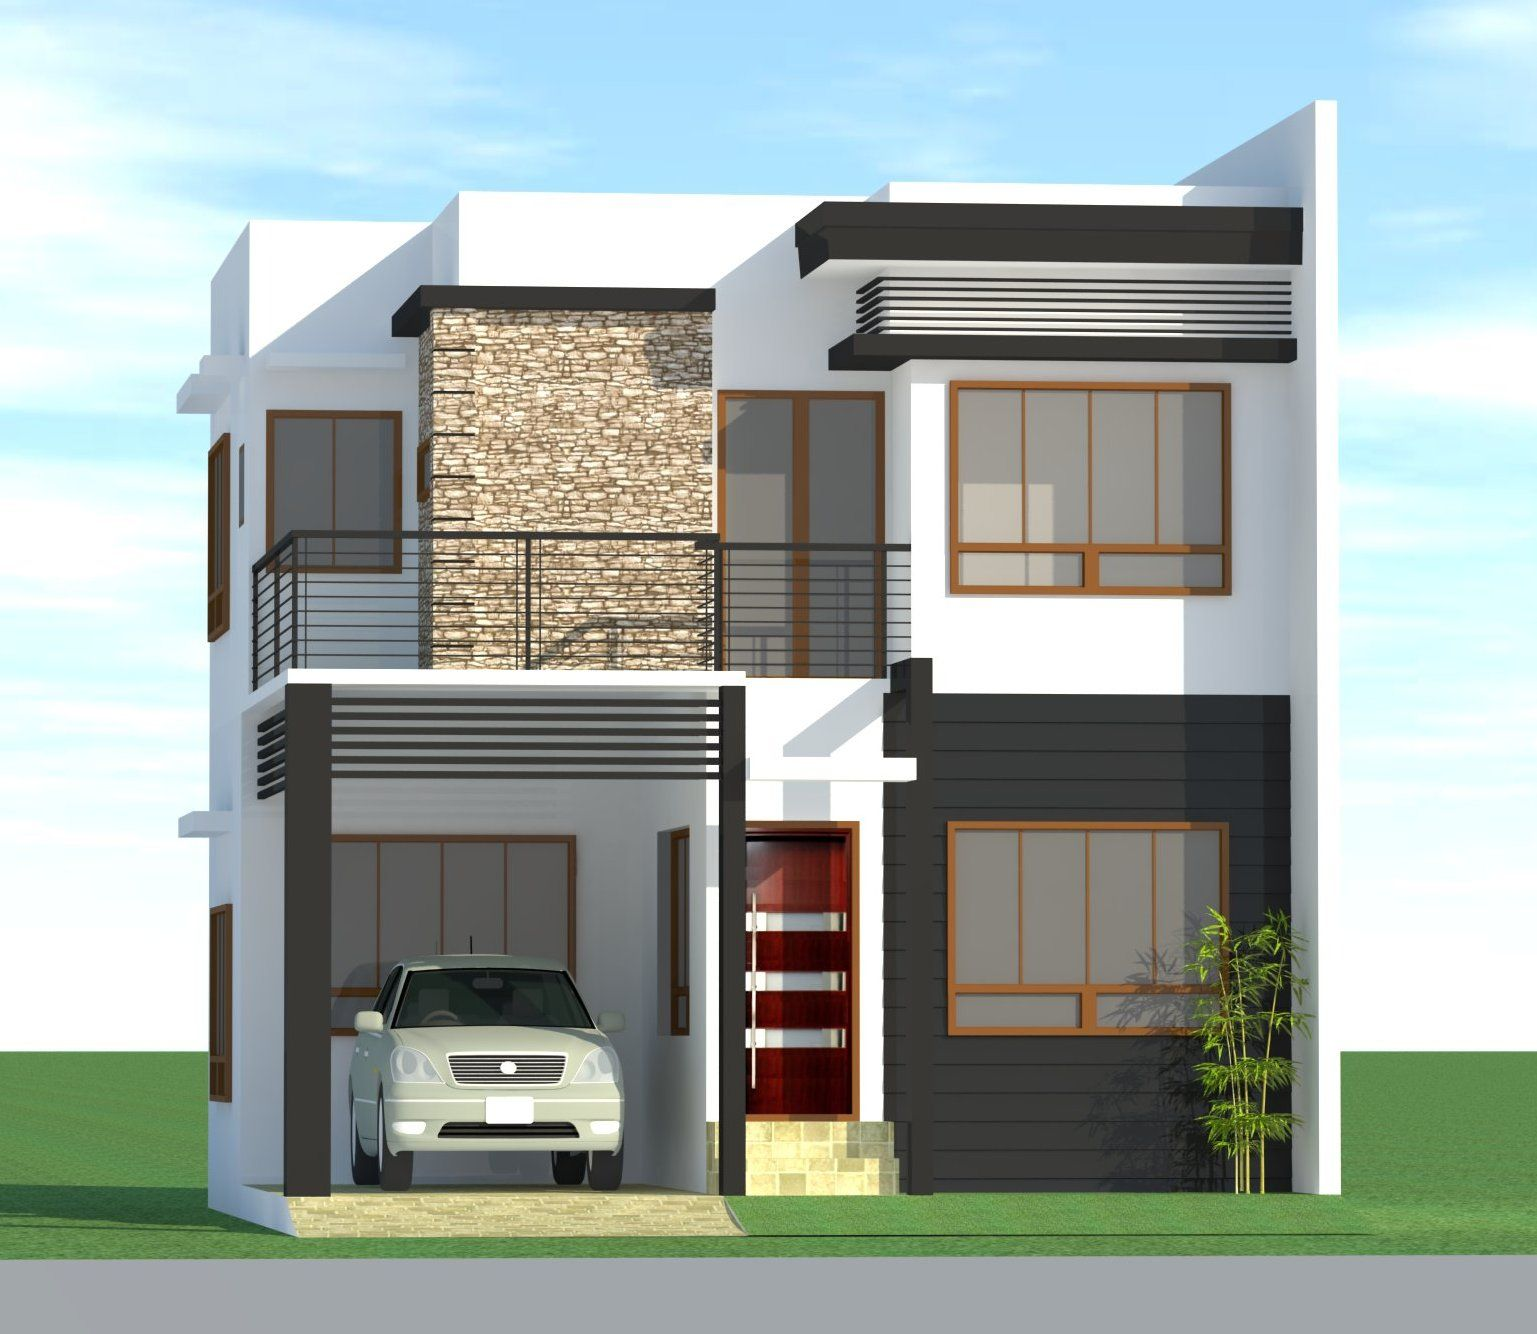 Philippines house design images 3 home design ideas for Apartment exterior design philippines